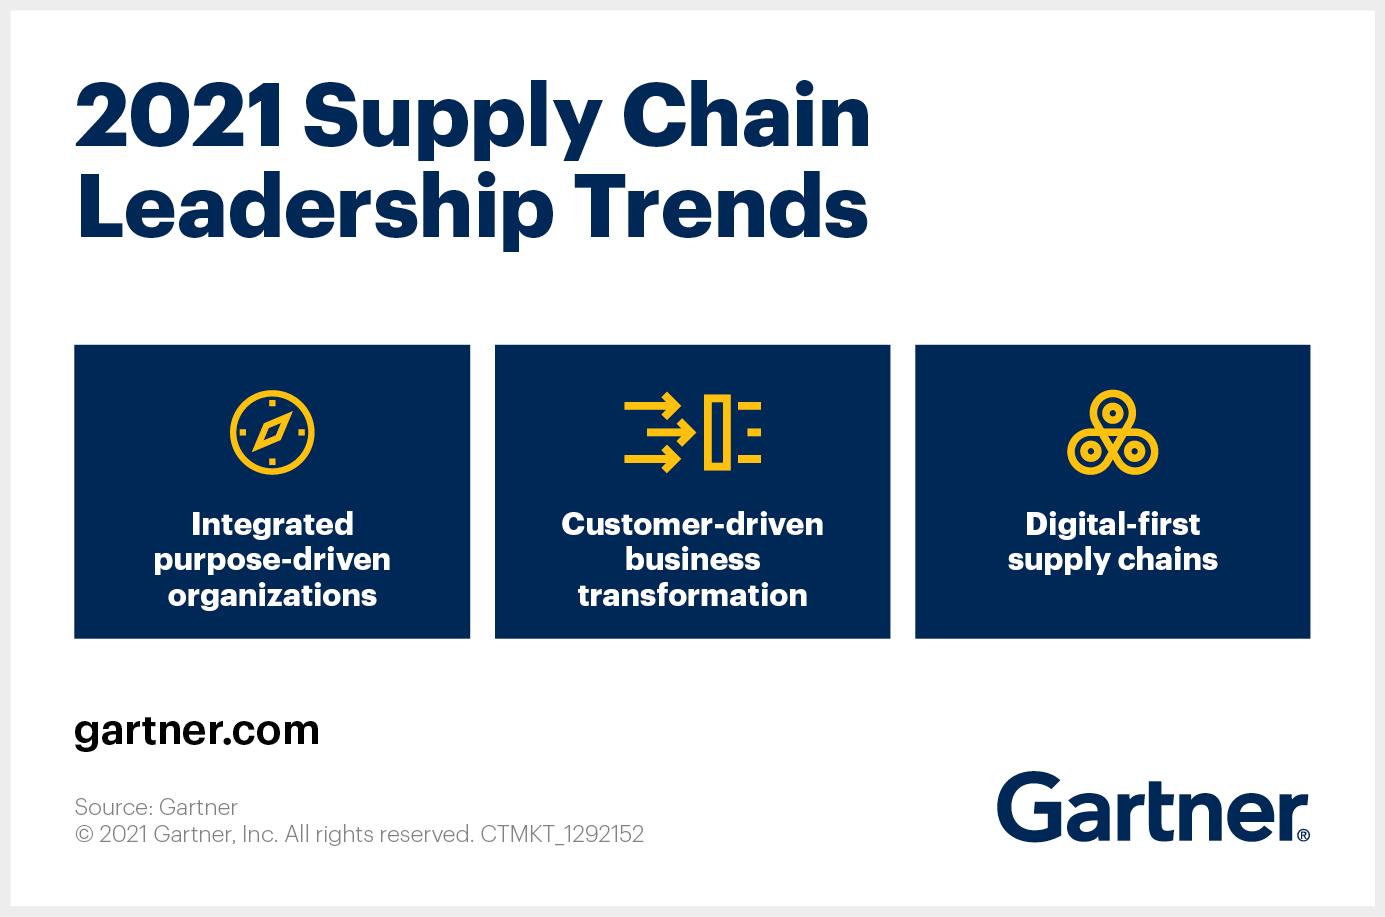 2021 Supply Chain Leadership Trends